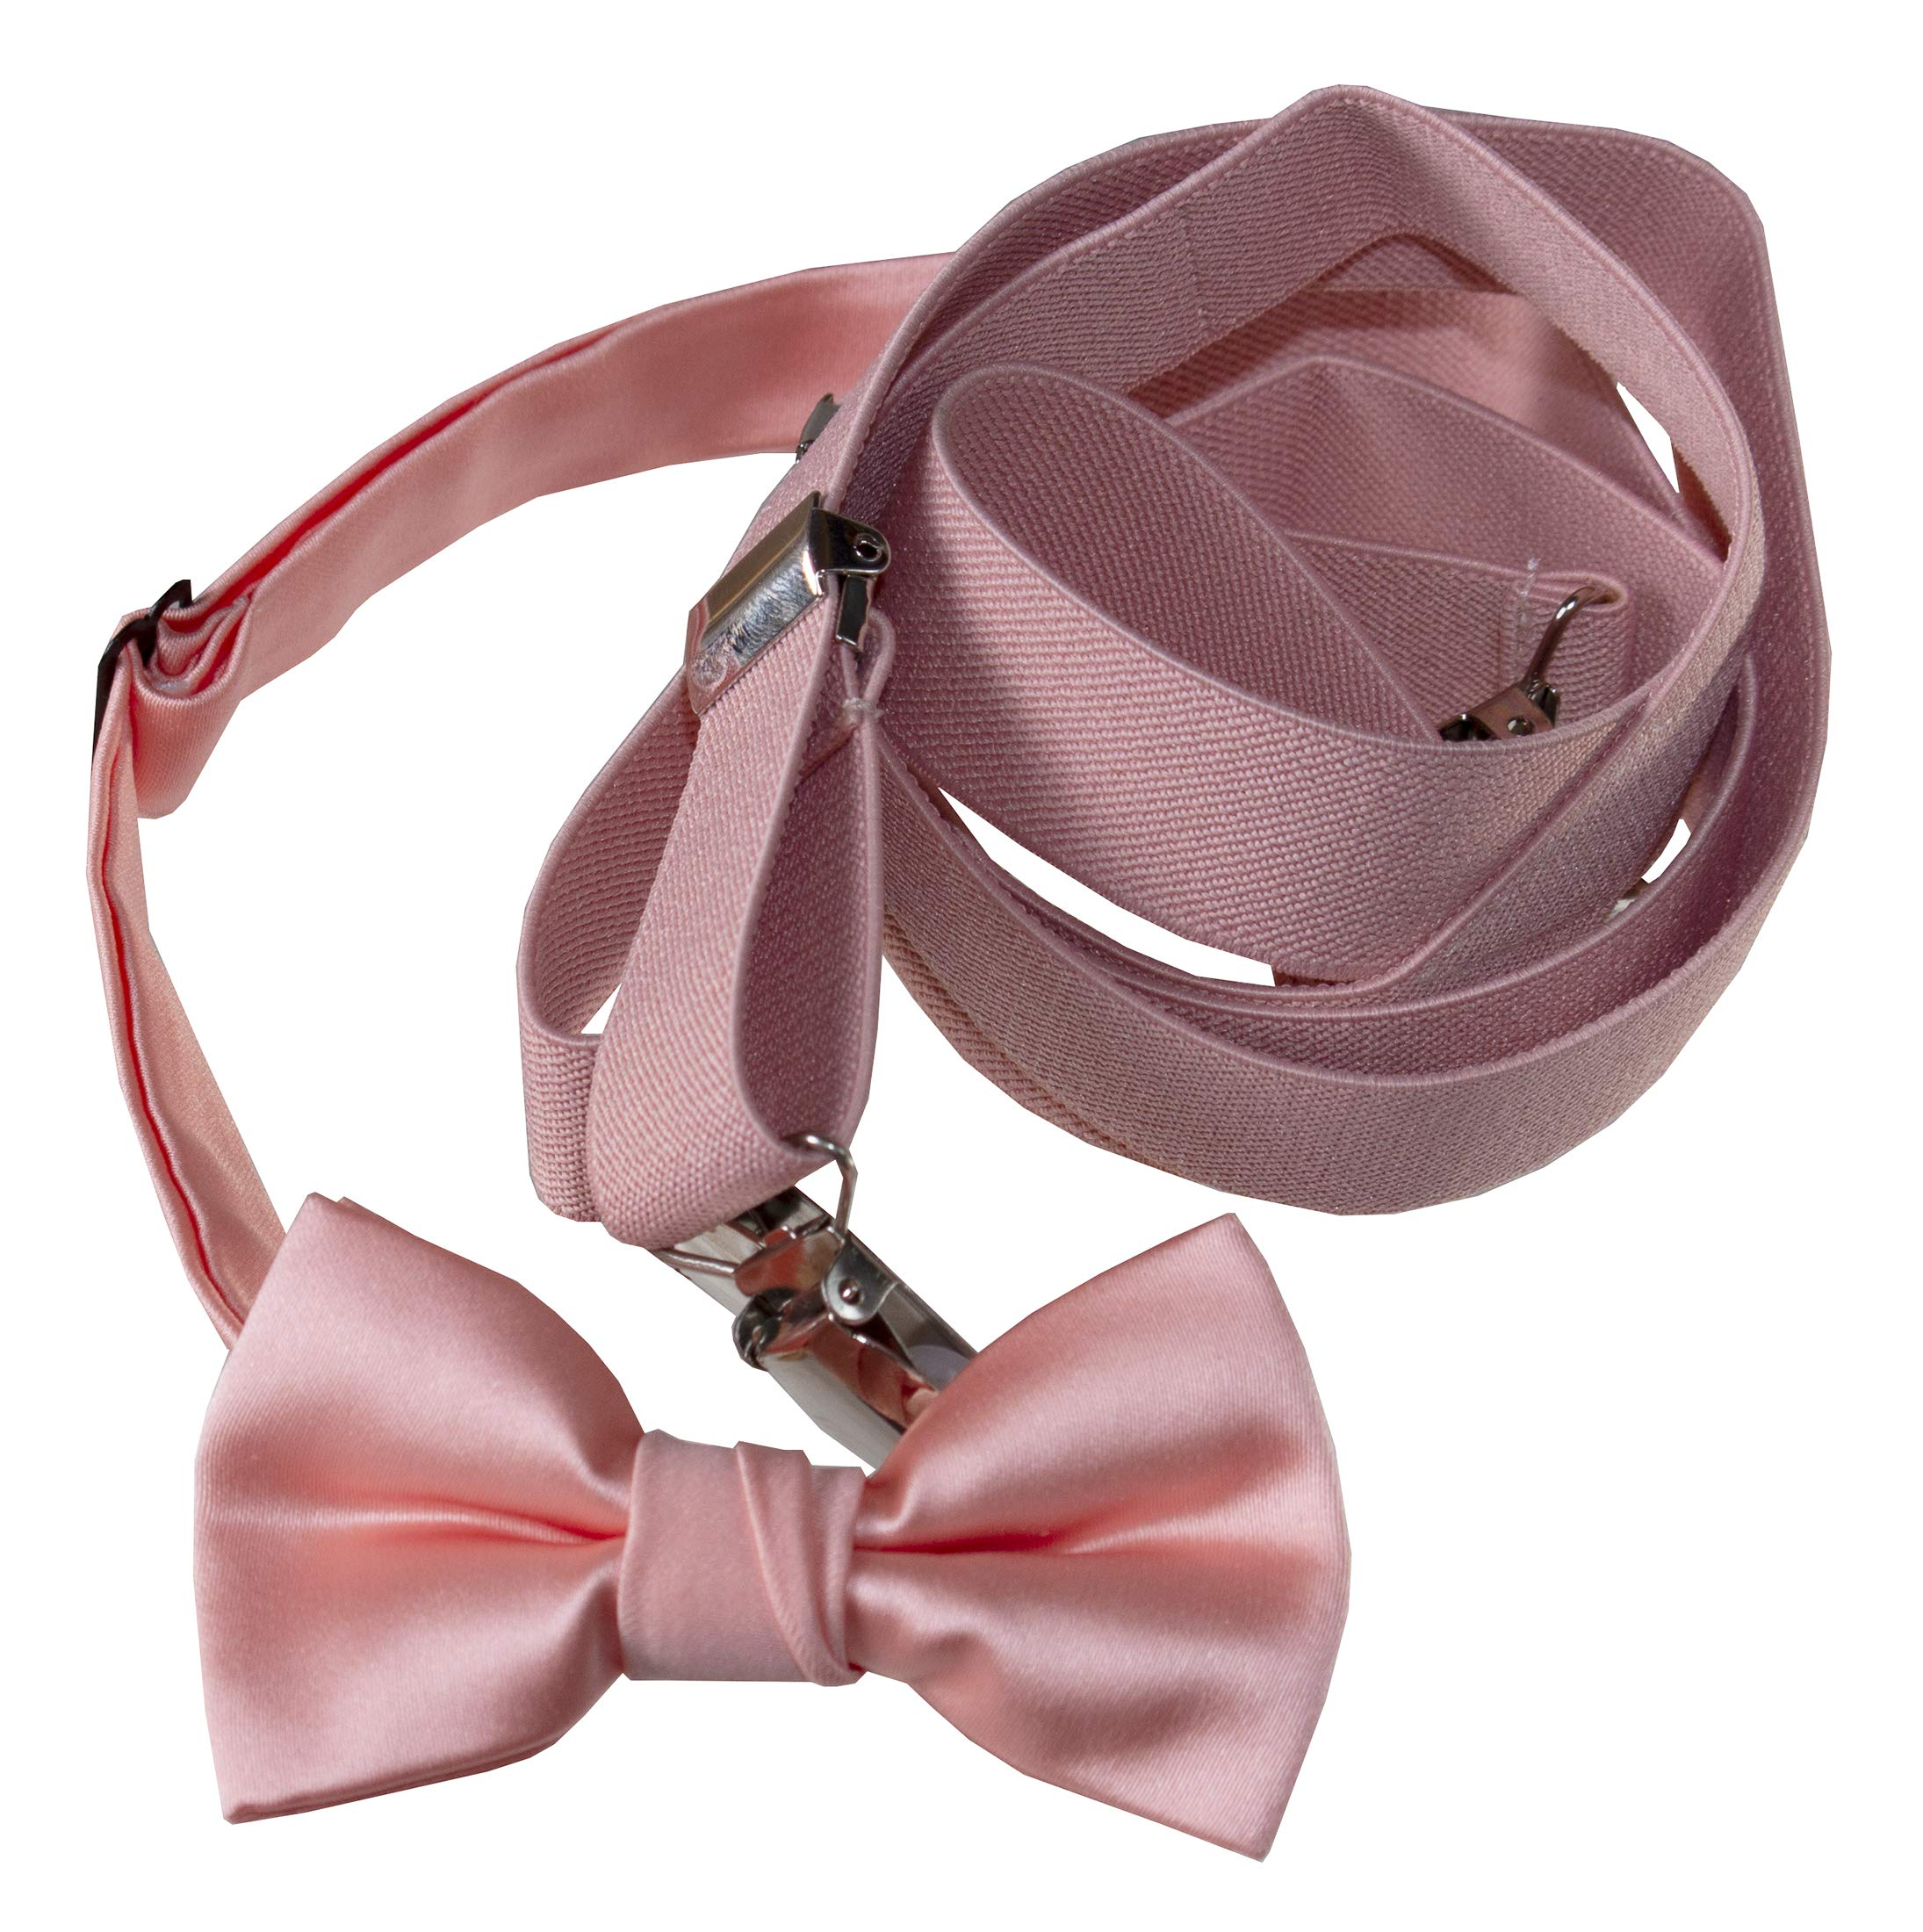 Tuxgear Mens Matching Adjustable Suspender and Bow Tie, Peach, Adults 50'' (Peach, Adults 50'')